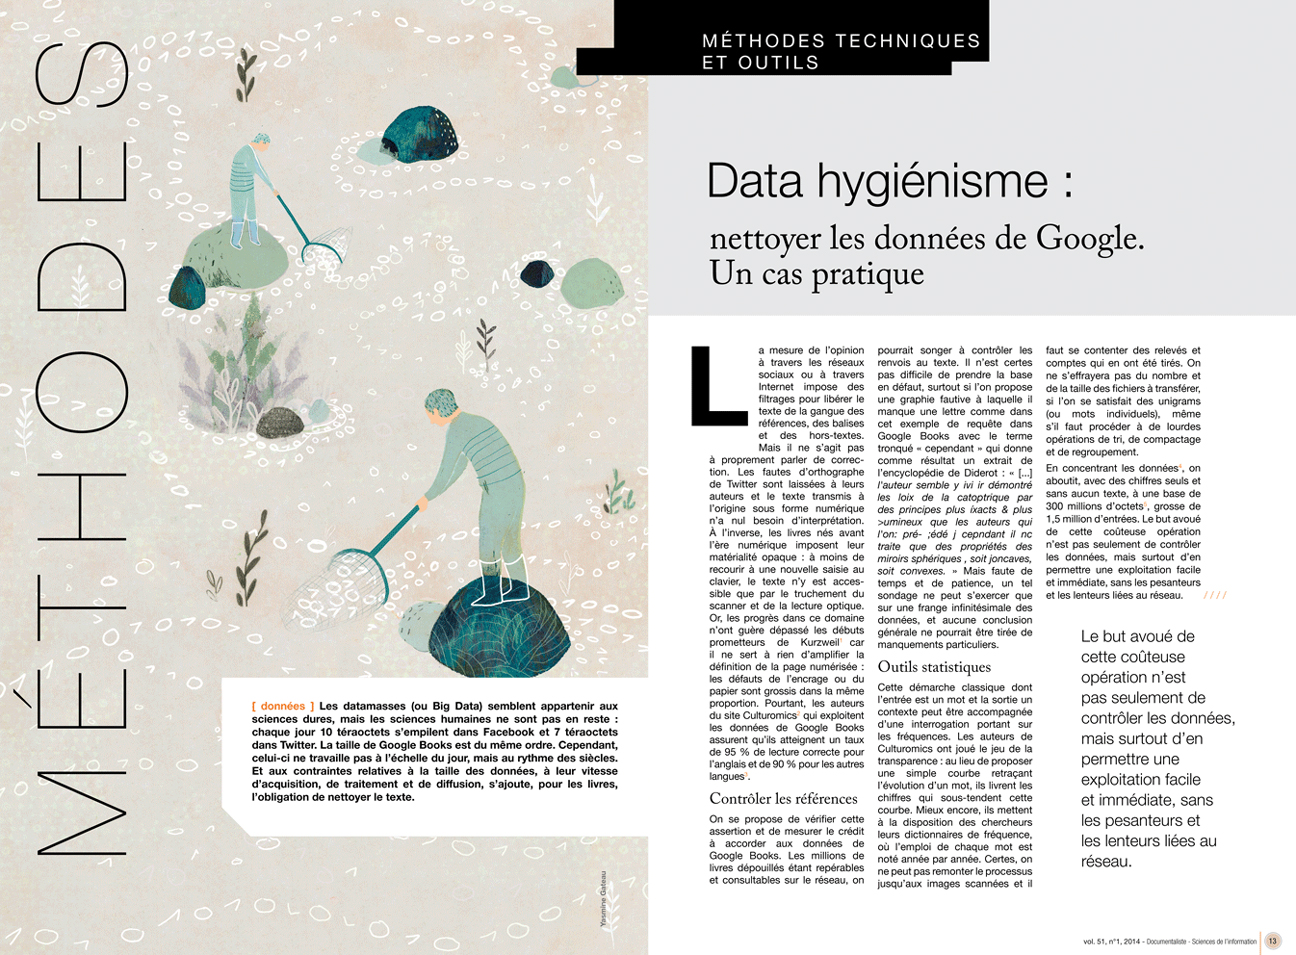 yasmine gateau, illustration, documentaliste, I2D, editorial illustration, data hygienisme